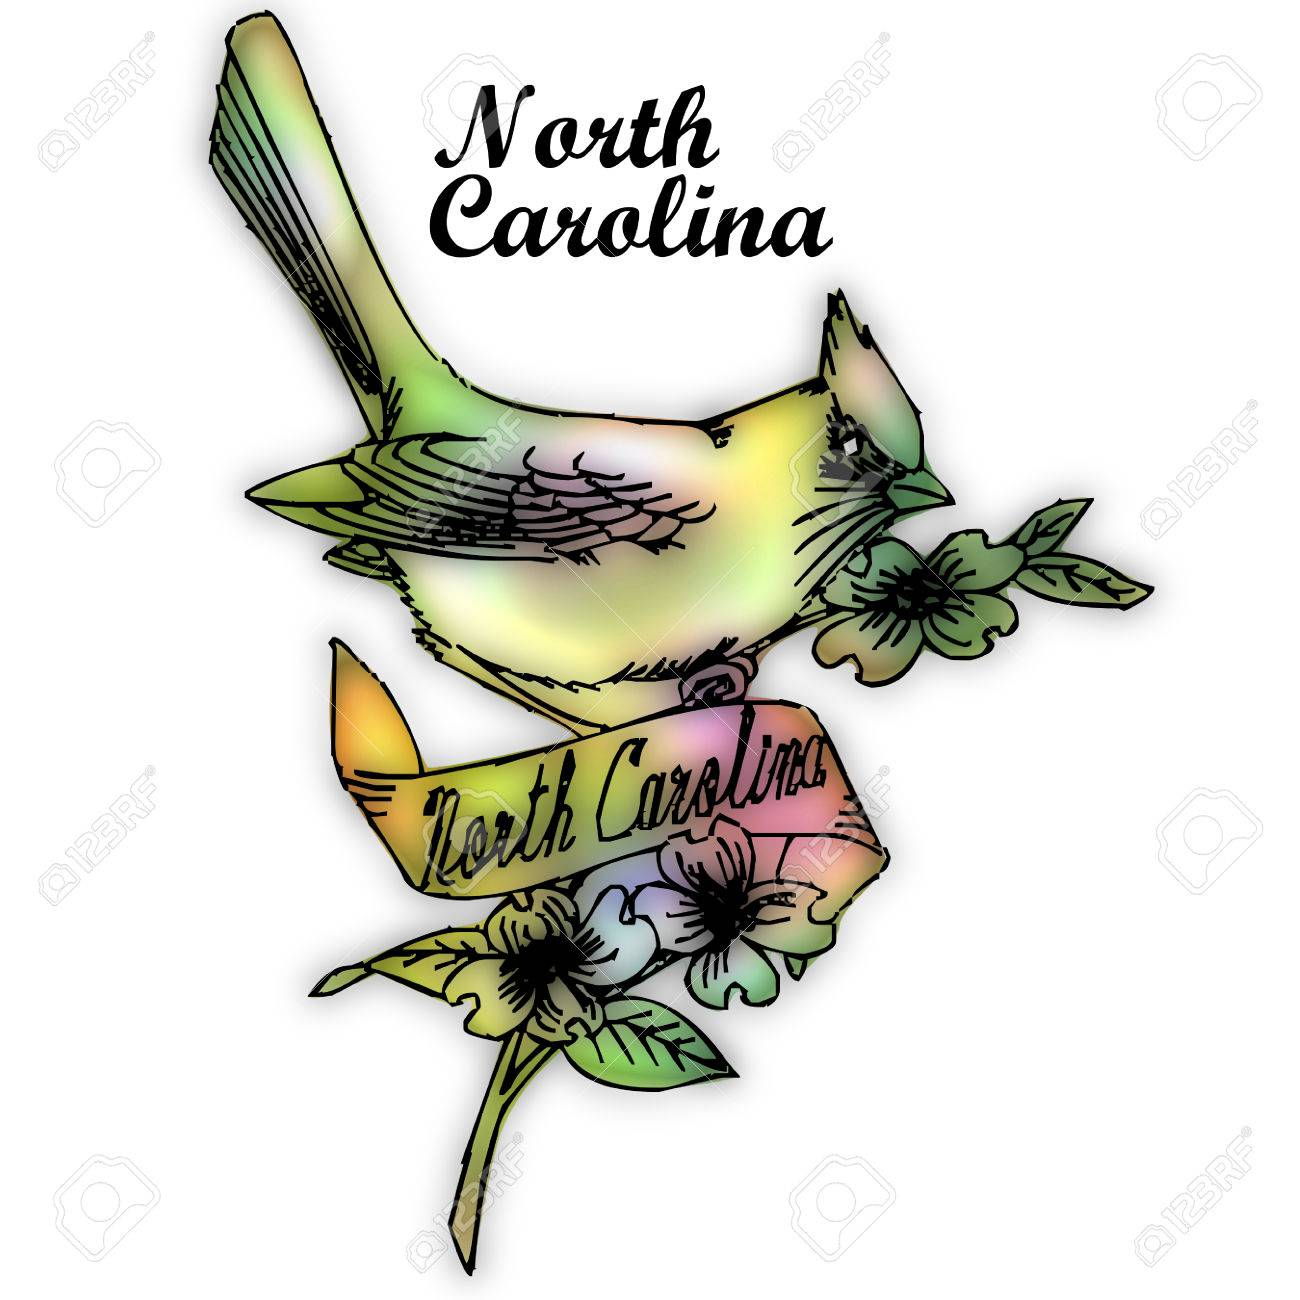 north carolina state bird stock photo 30763947